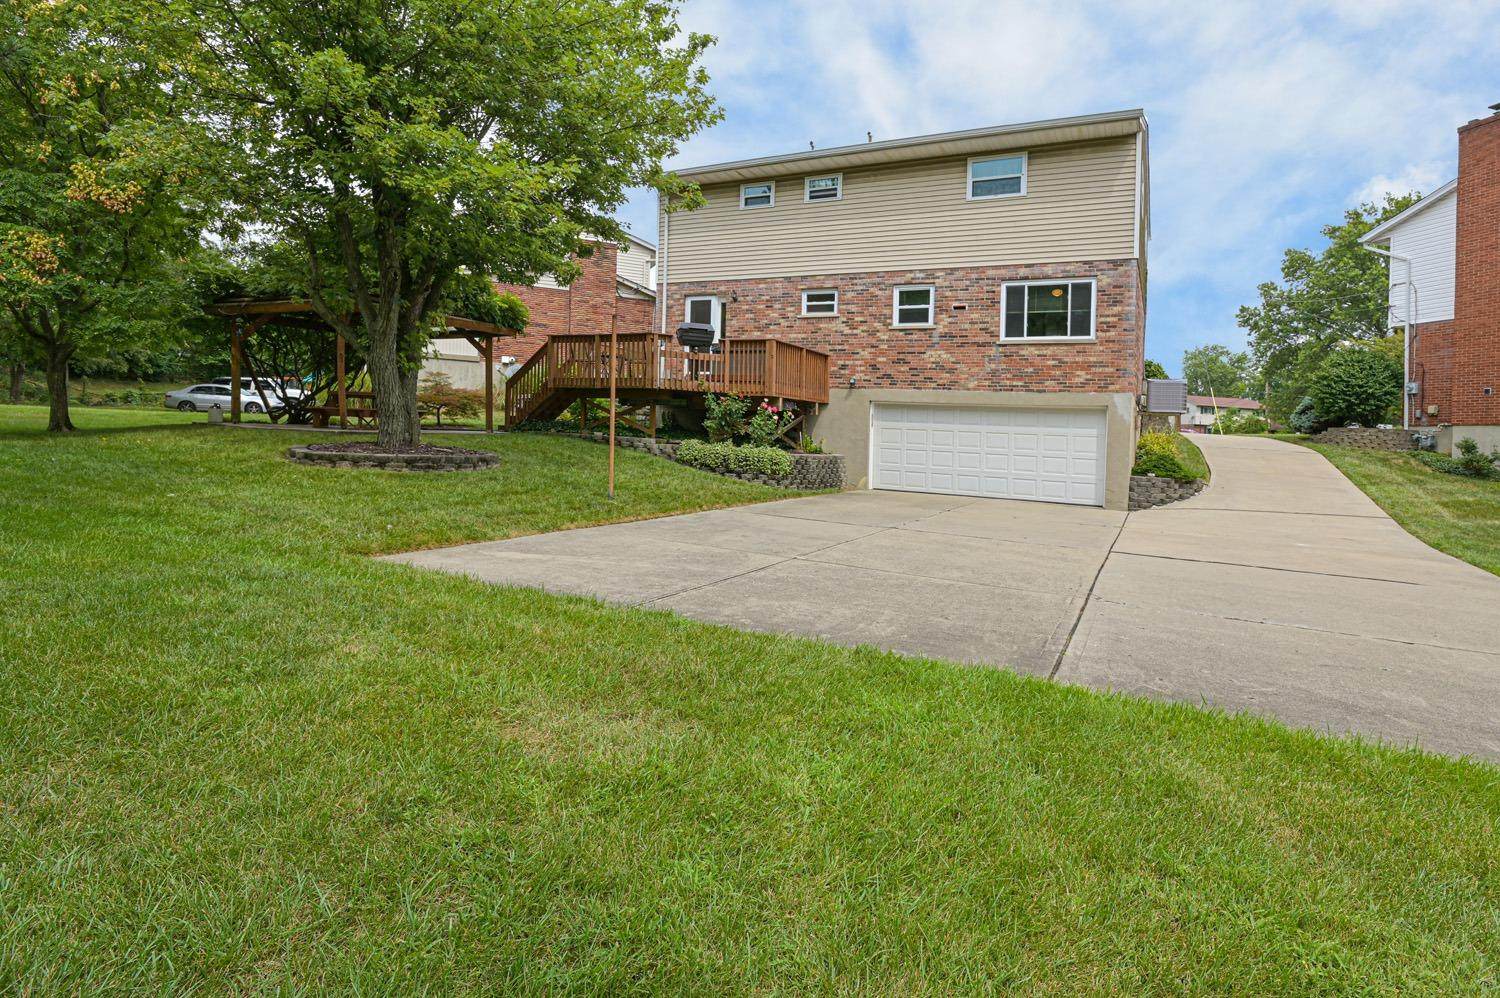 Photo 2 for 3199 Sunnyhollow Ln Monfort Hts., OH 45239